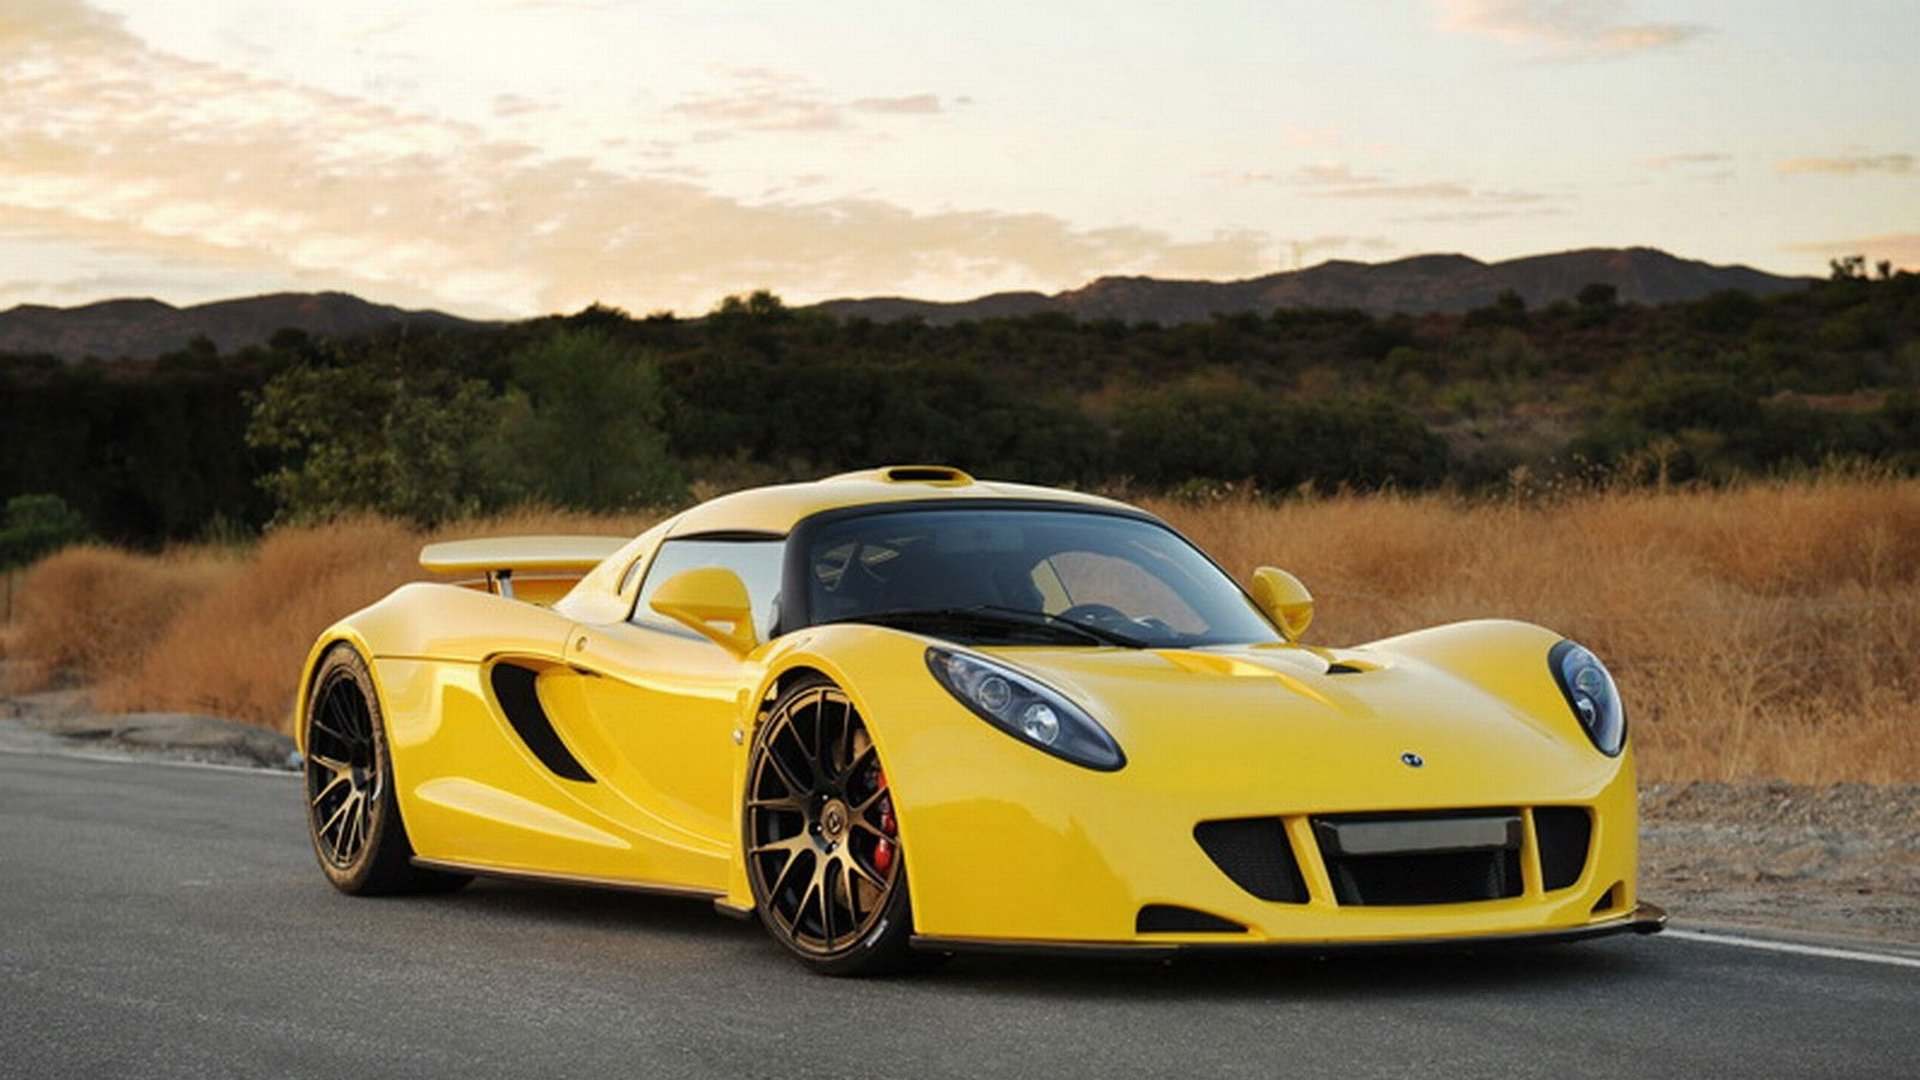 Download 1080p Hennessey Venom GT computer background ID:277896 for free